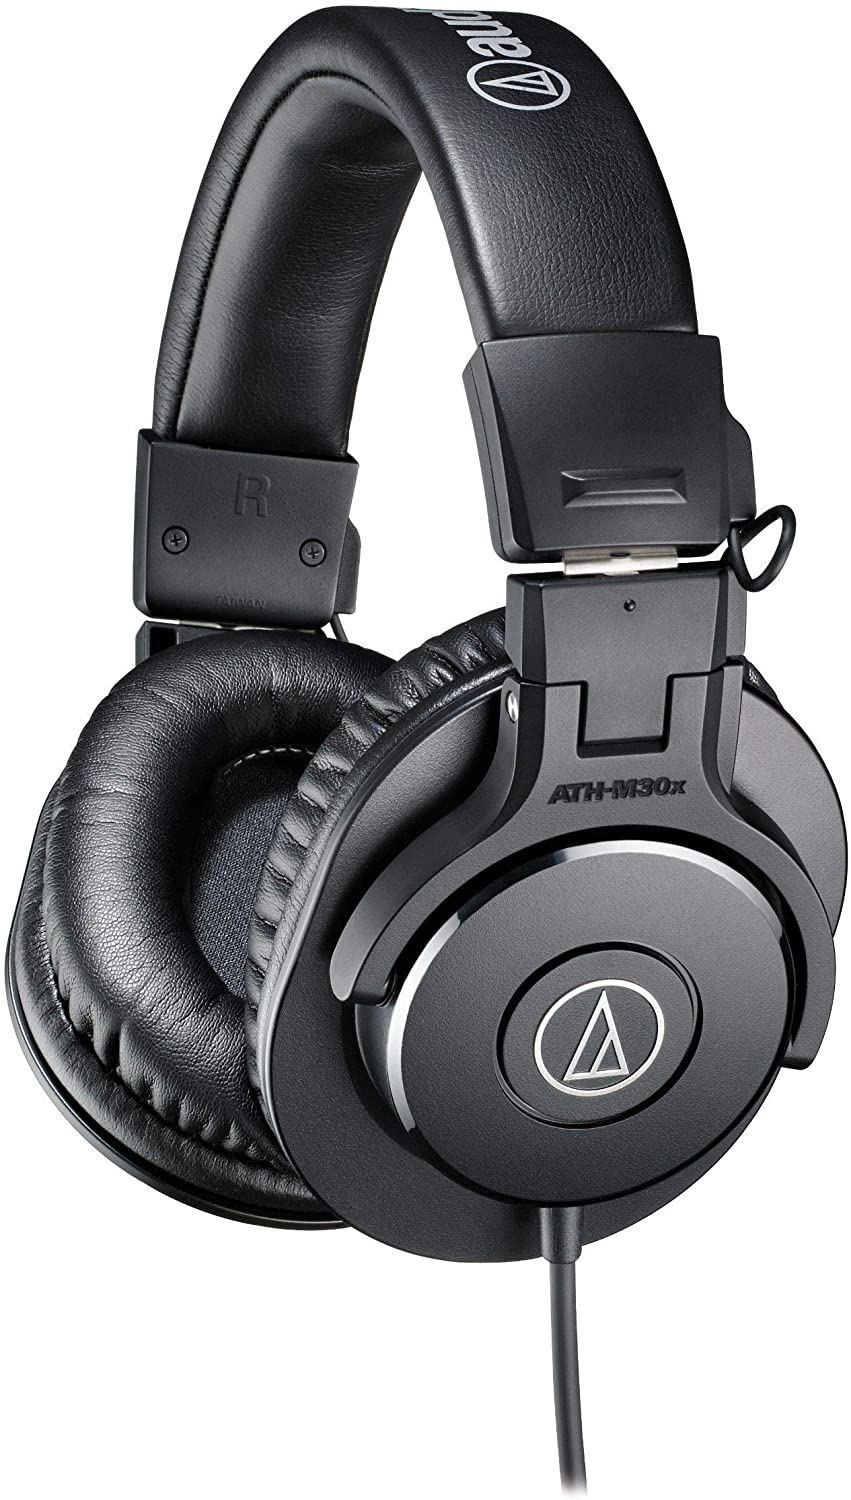 23. Audio-Technica ATH-M30x Professional Studio Monitor Headphones (Wired) at Amazon